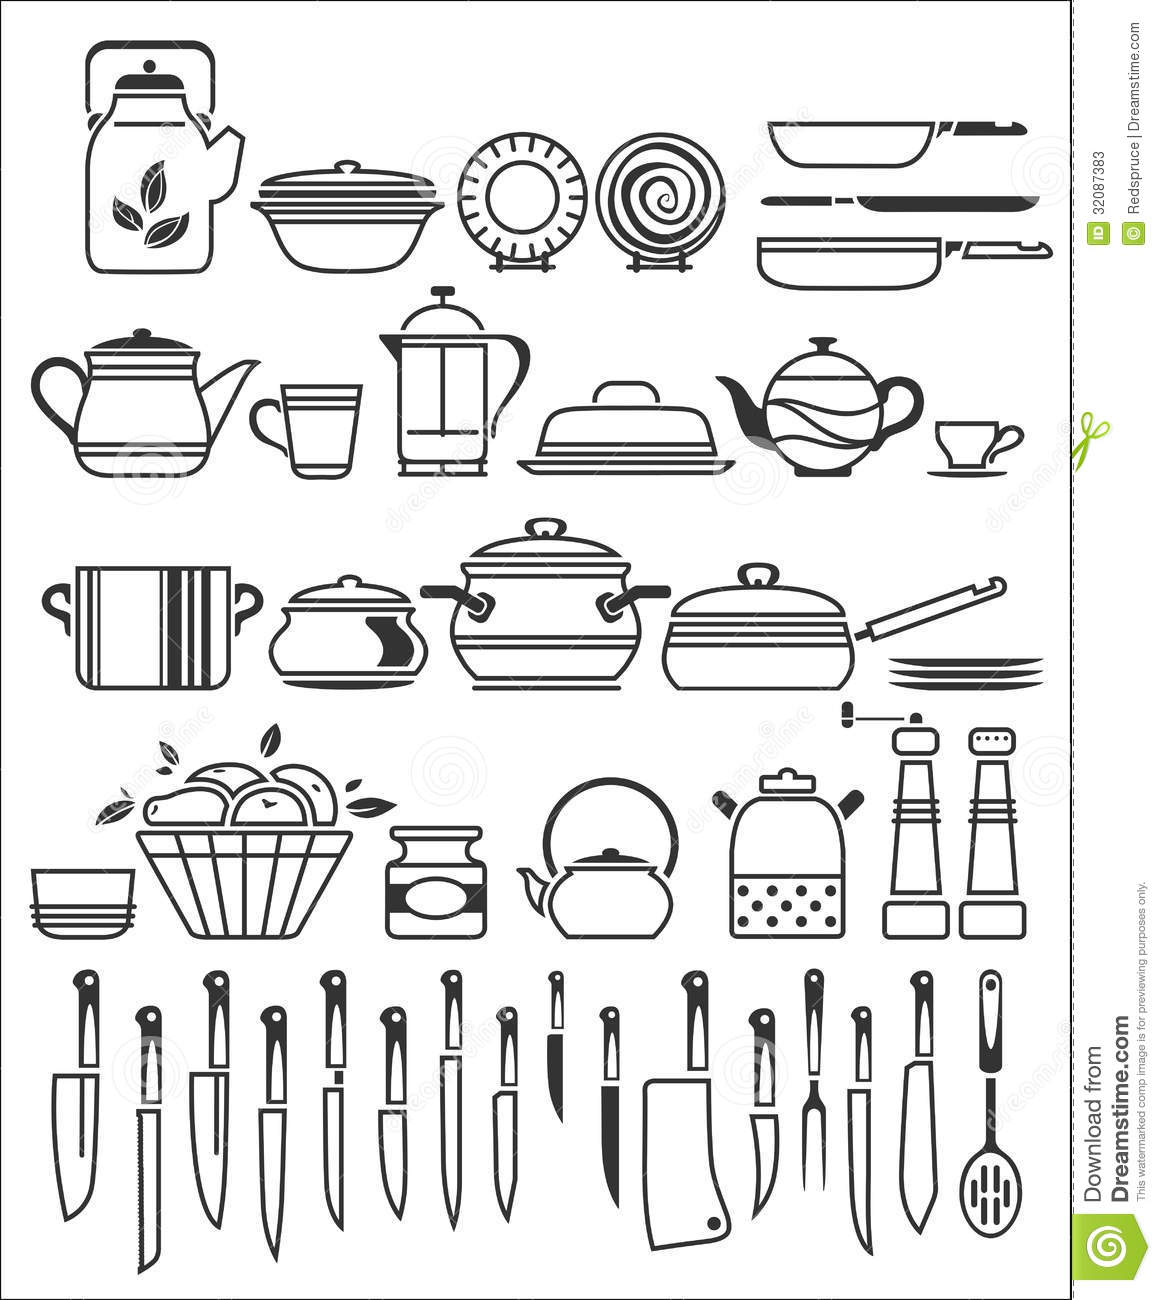 Kitchen tools and utensils vector illustration stock for Ustensile de cuisine